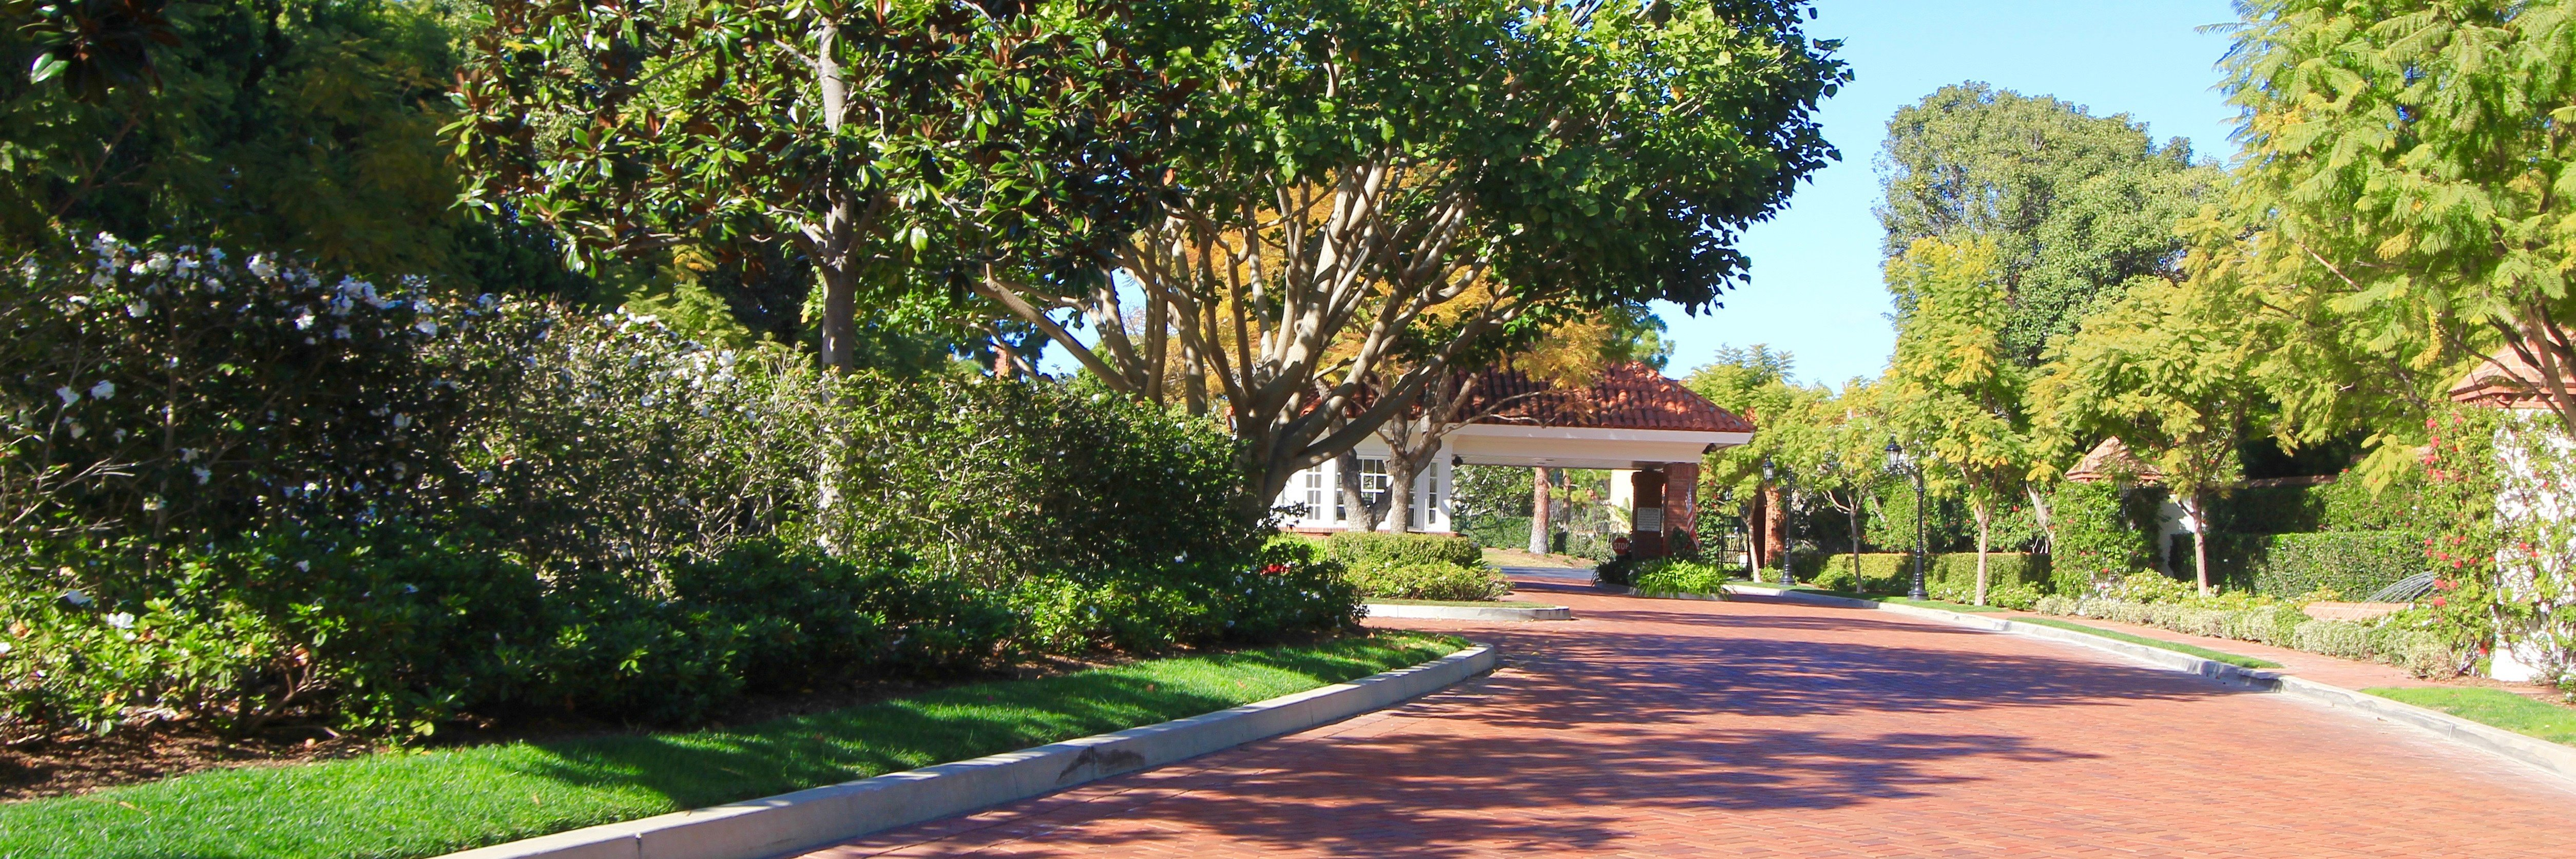 Belcourt is a home community in Newport Beach, CA